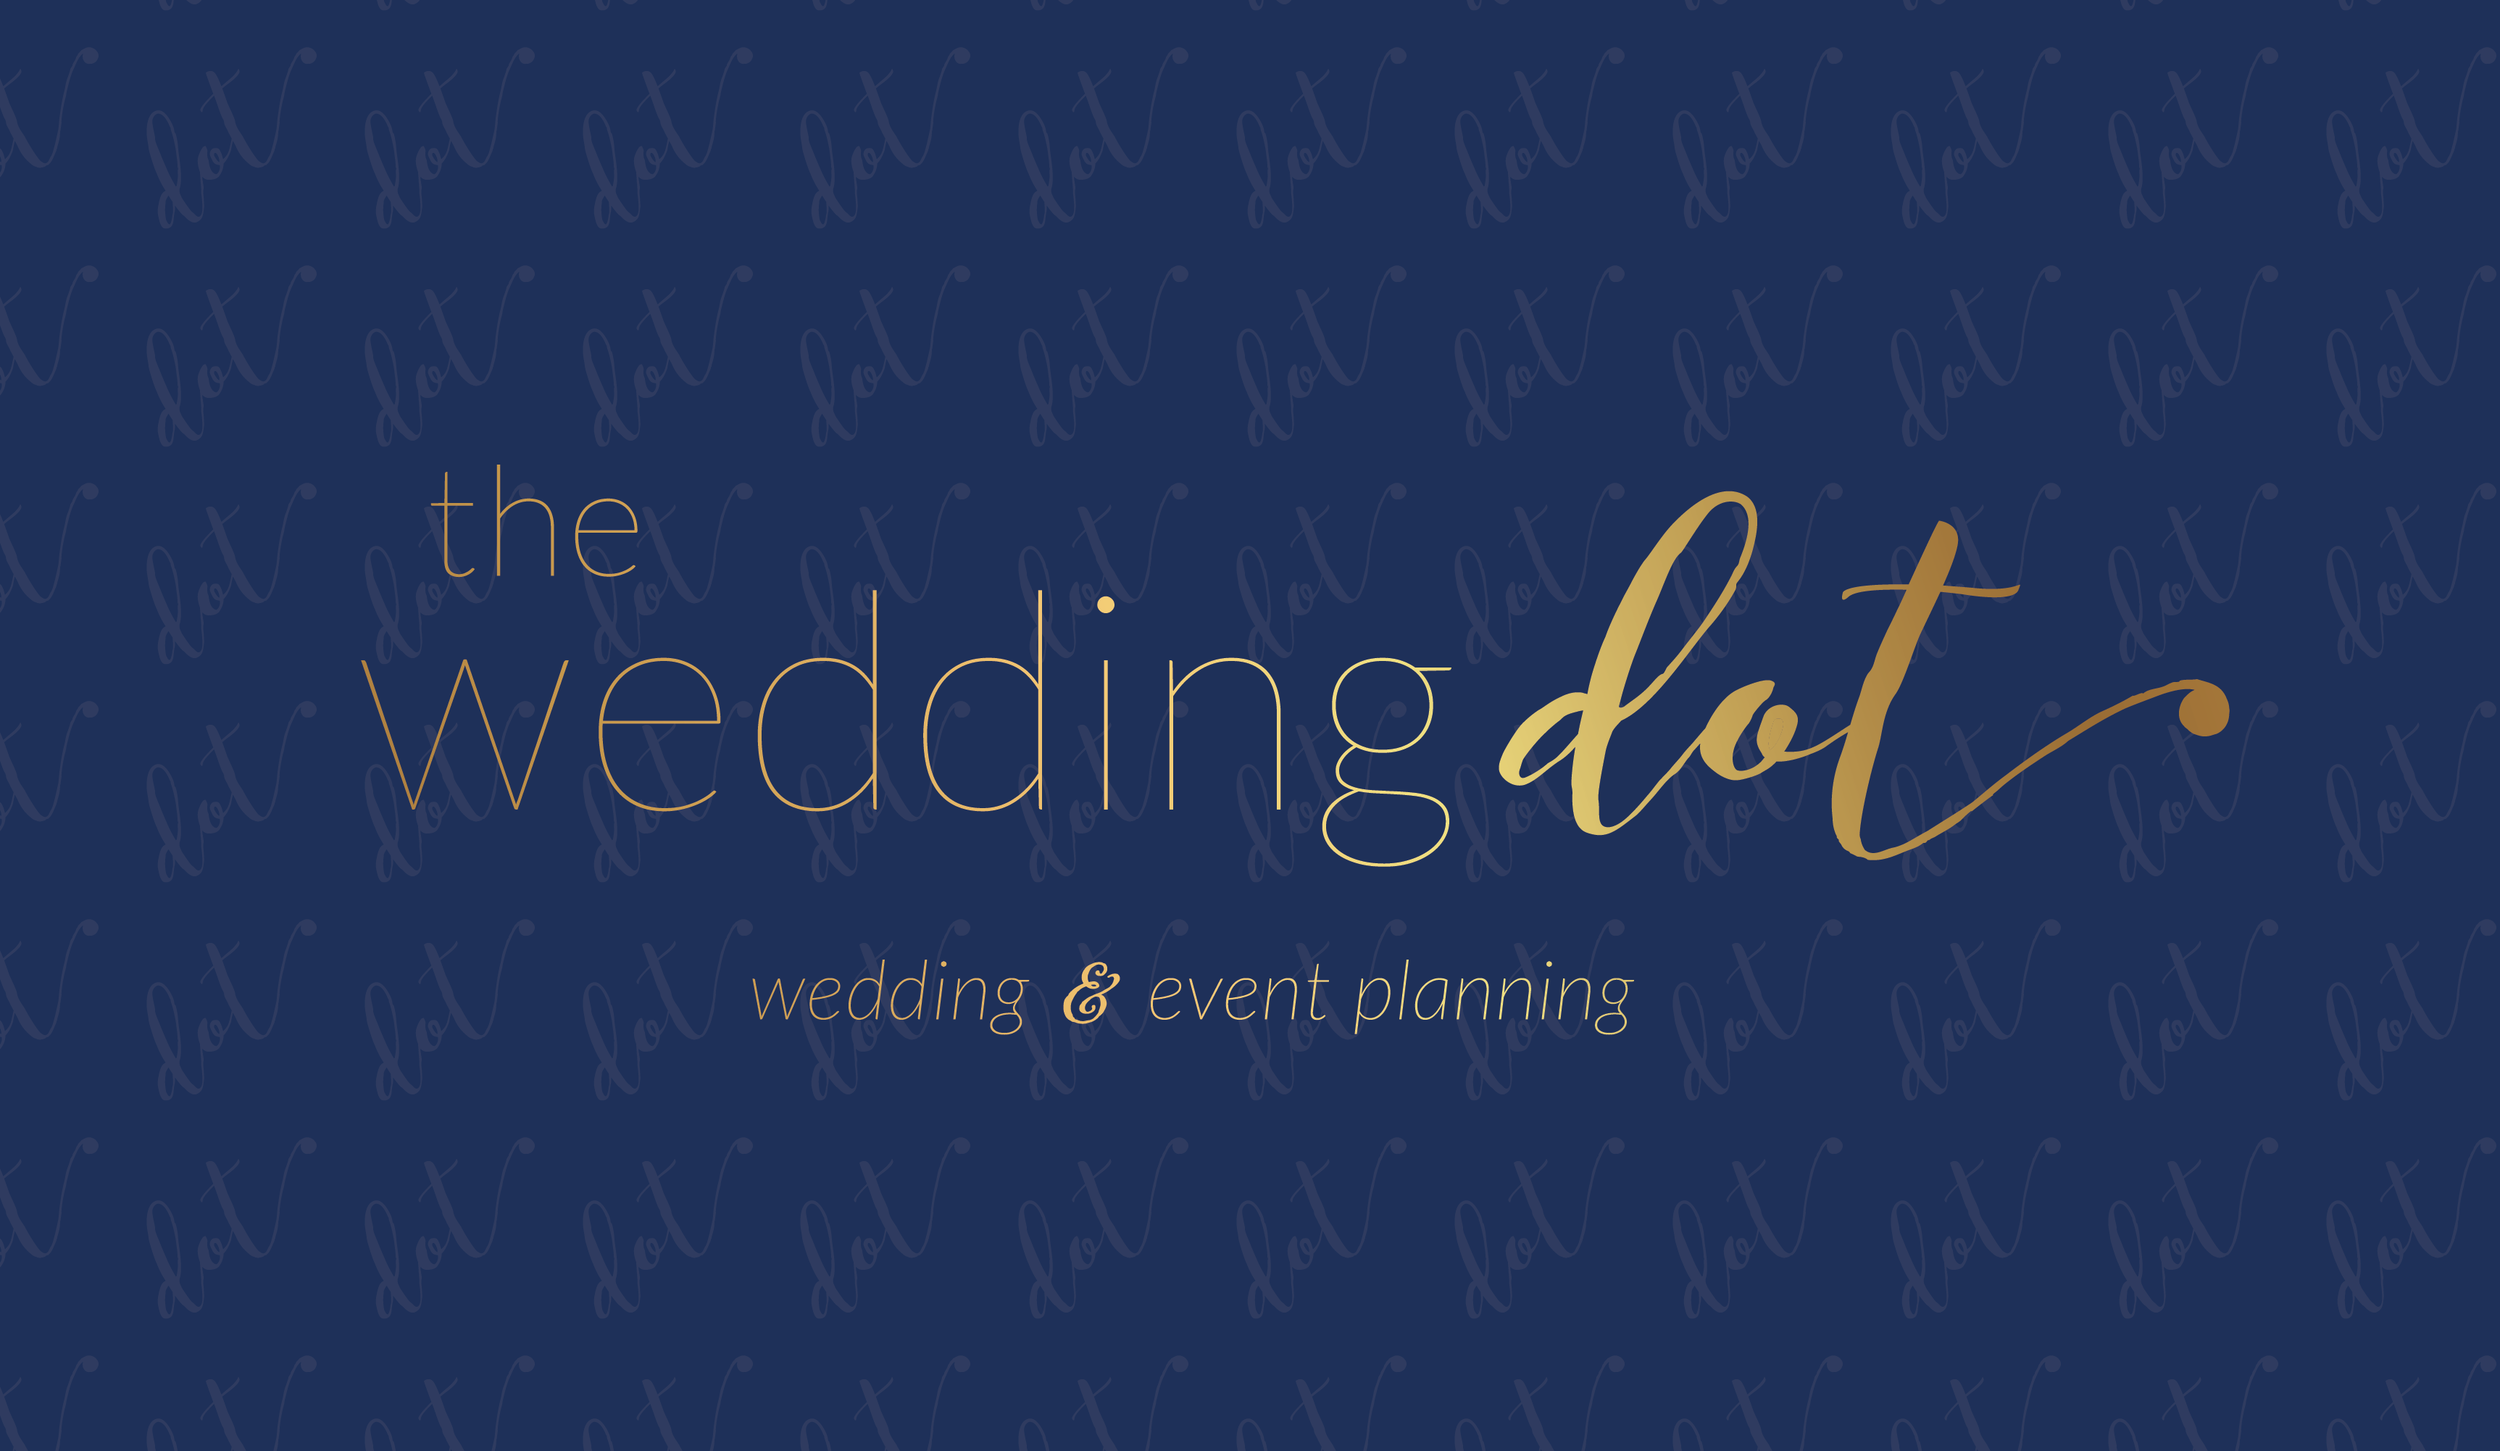 The Wedding Dot Logo and Branding Design by AllieMarie Design